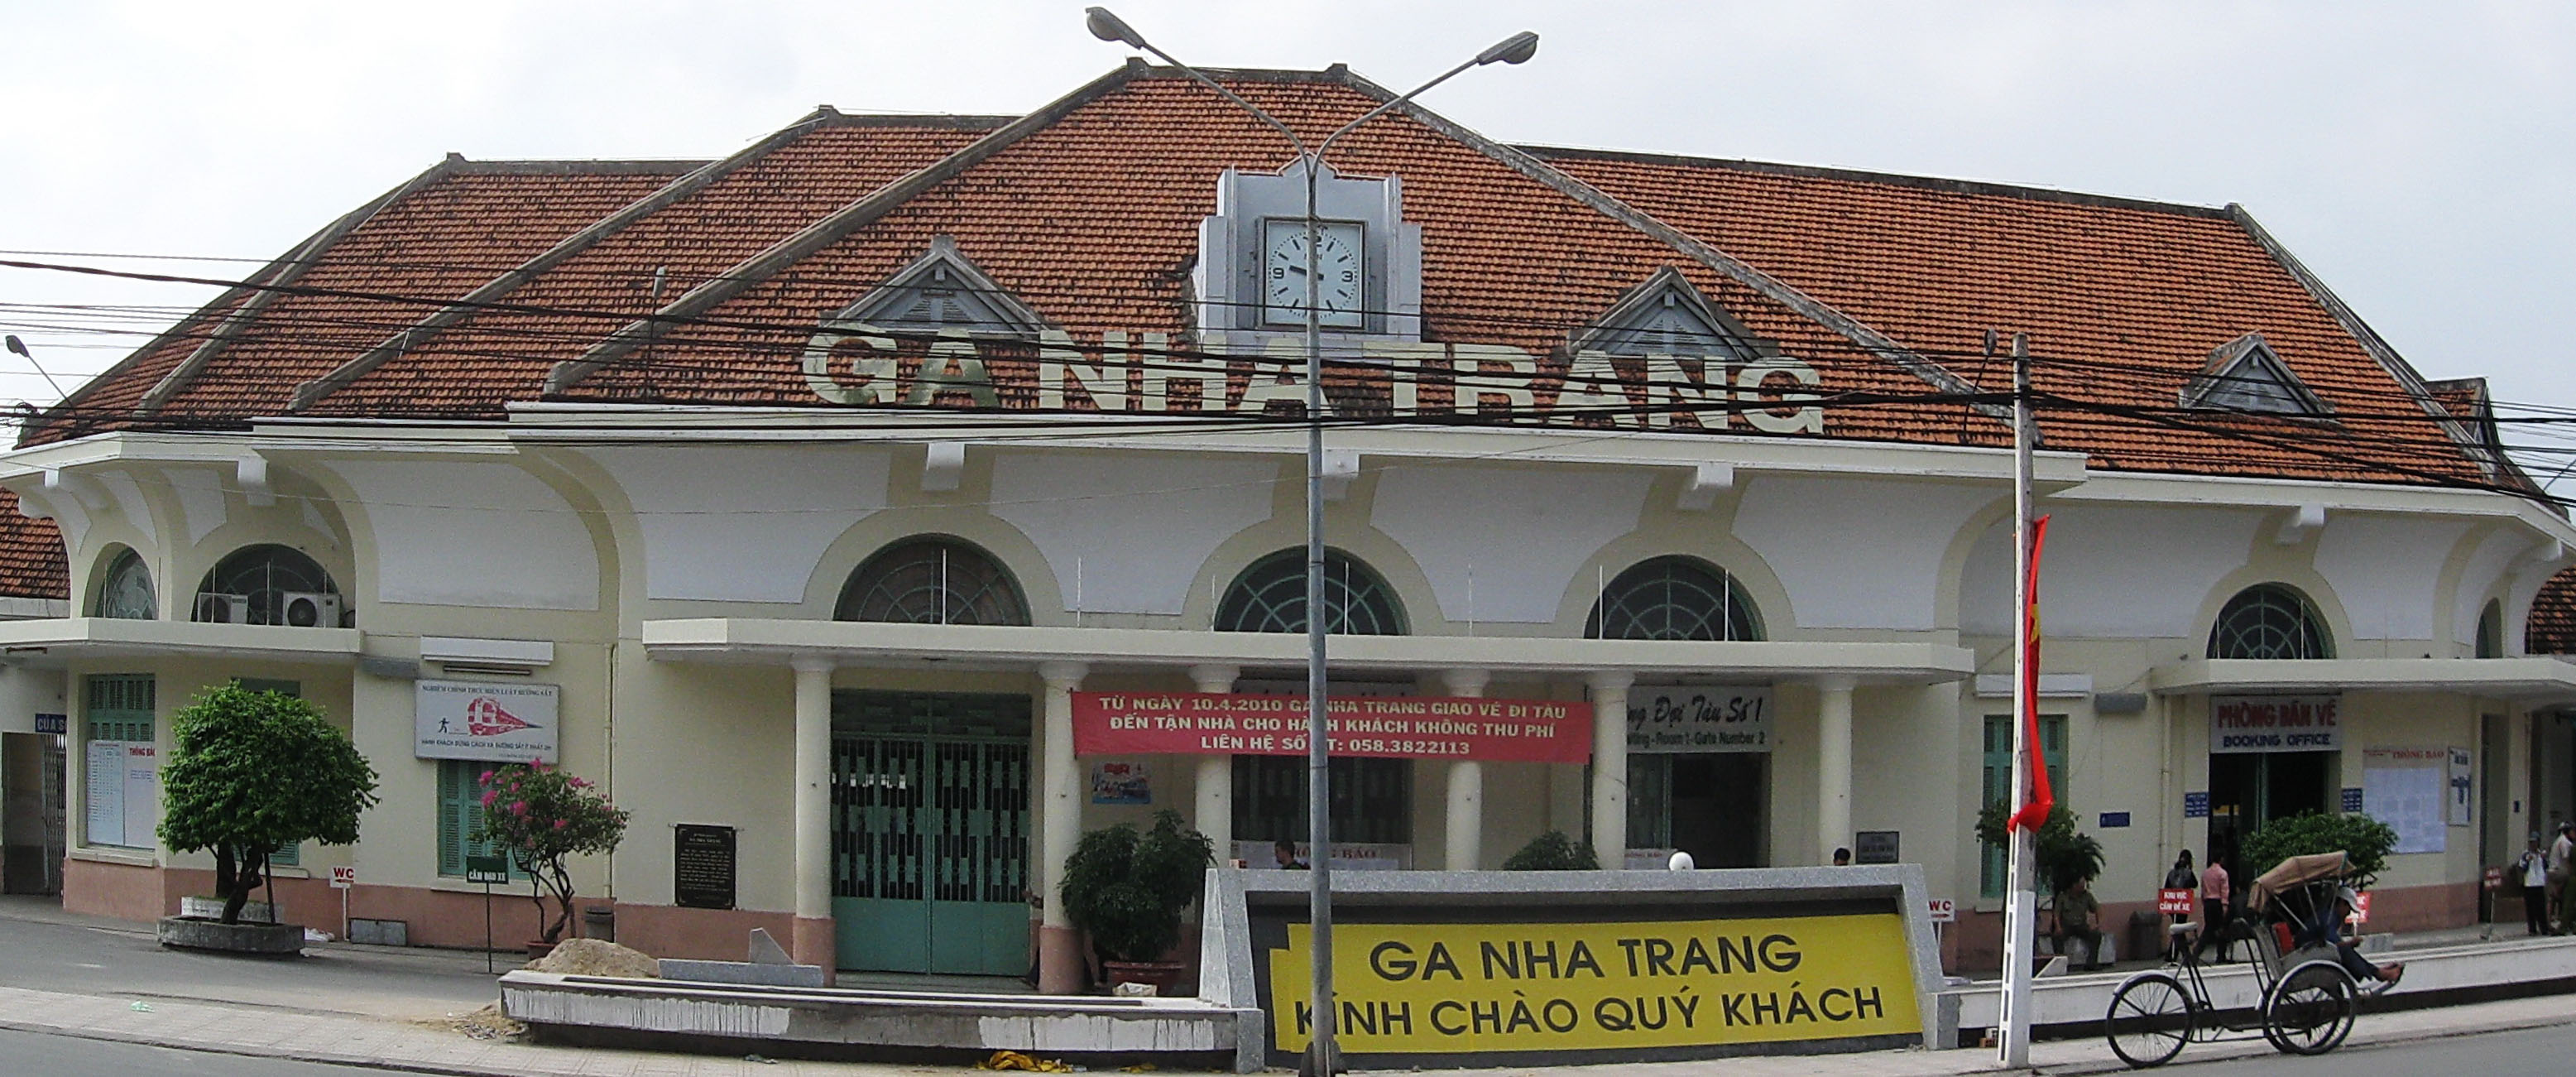 nha trang station Met 2 travellers who on arrival at the temporary bus station in nha trang was  approached by motorcycle taxis and offered to take them to their.